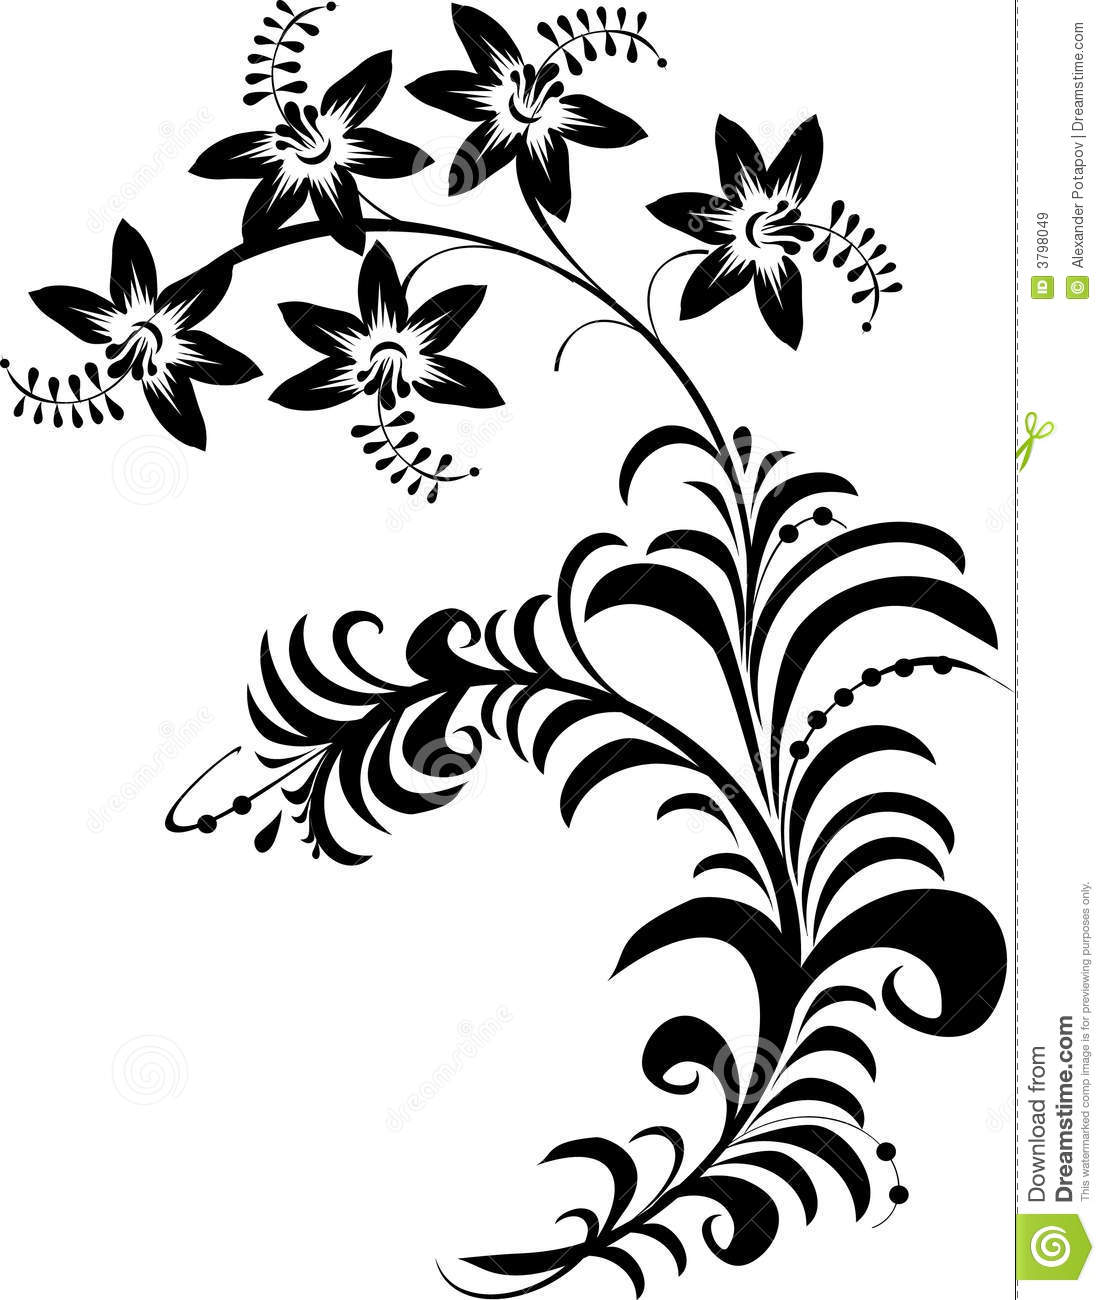 Flowers black and white drawing at getdrawings free for 1105x1300 flower art black and white clipart mightylinksfo